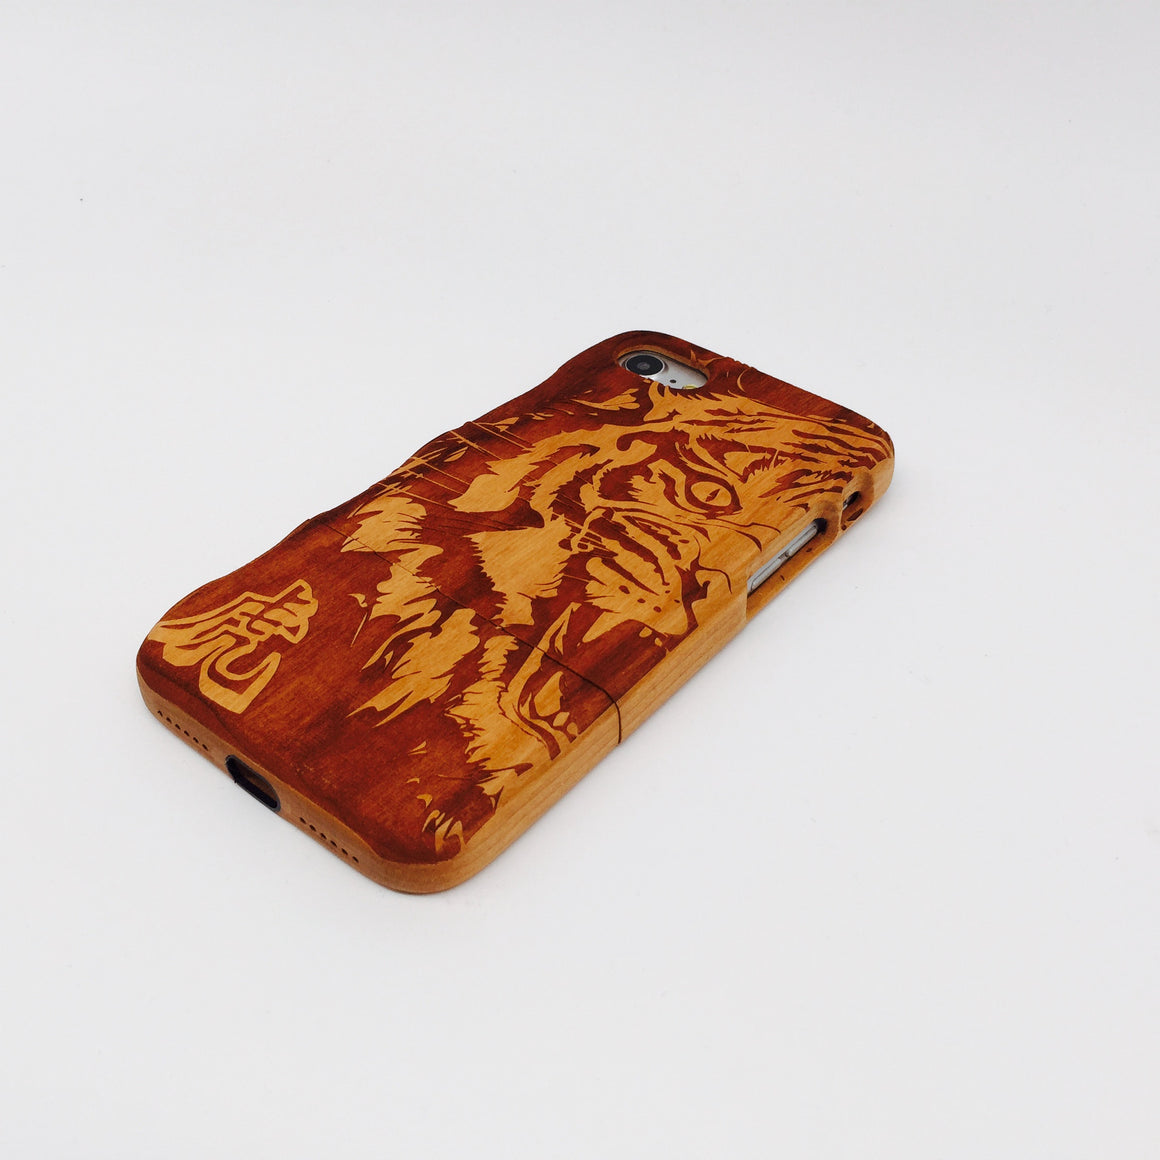 Jungle tiger | iPhone 7 / iPhone 7 Plus - Wood Case Australia